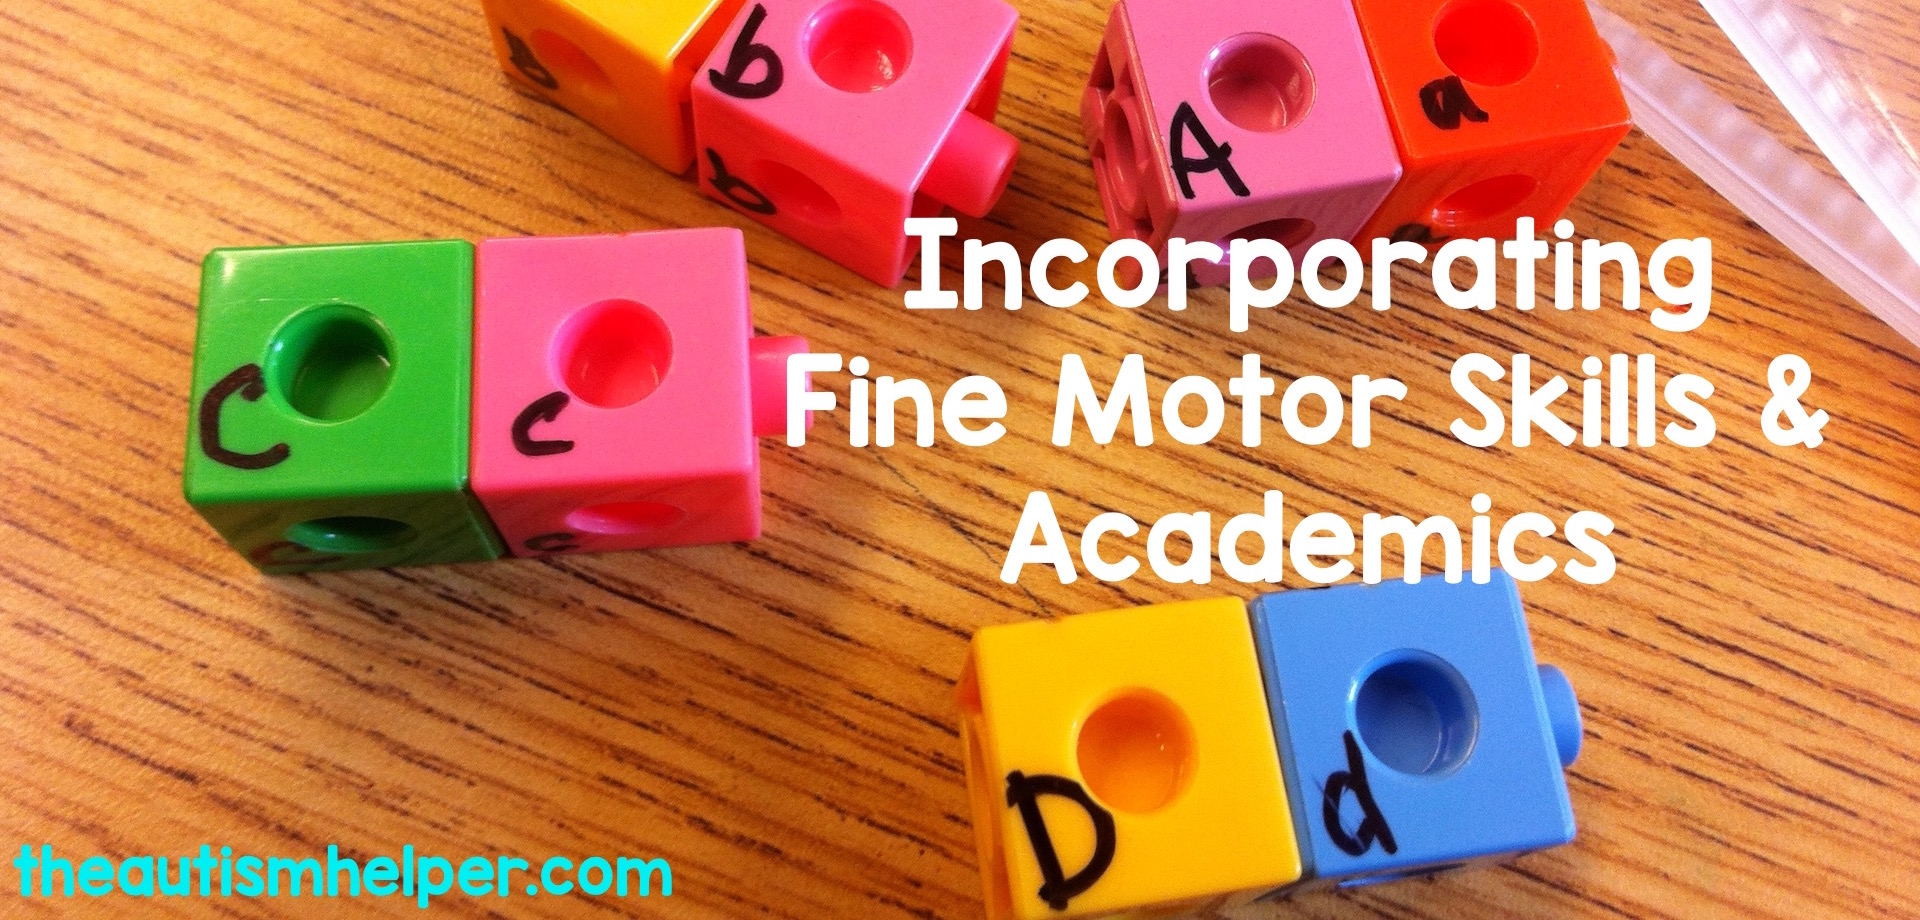 Incorporate fine motor skills into academic learning for your special education students —because who has enough time to focus on just one skill at a time?